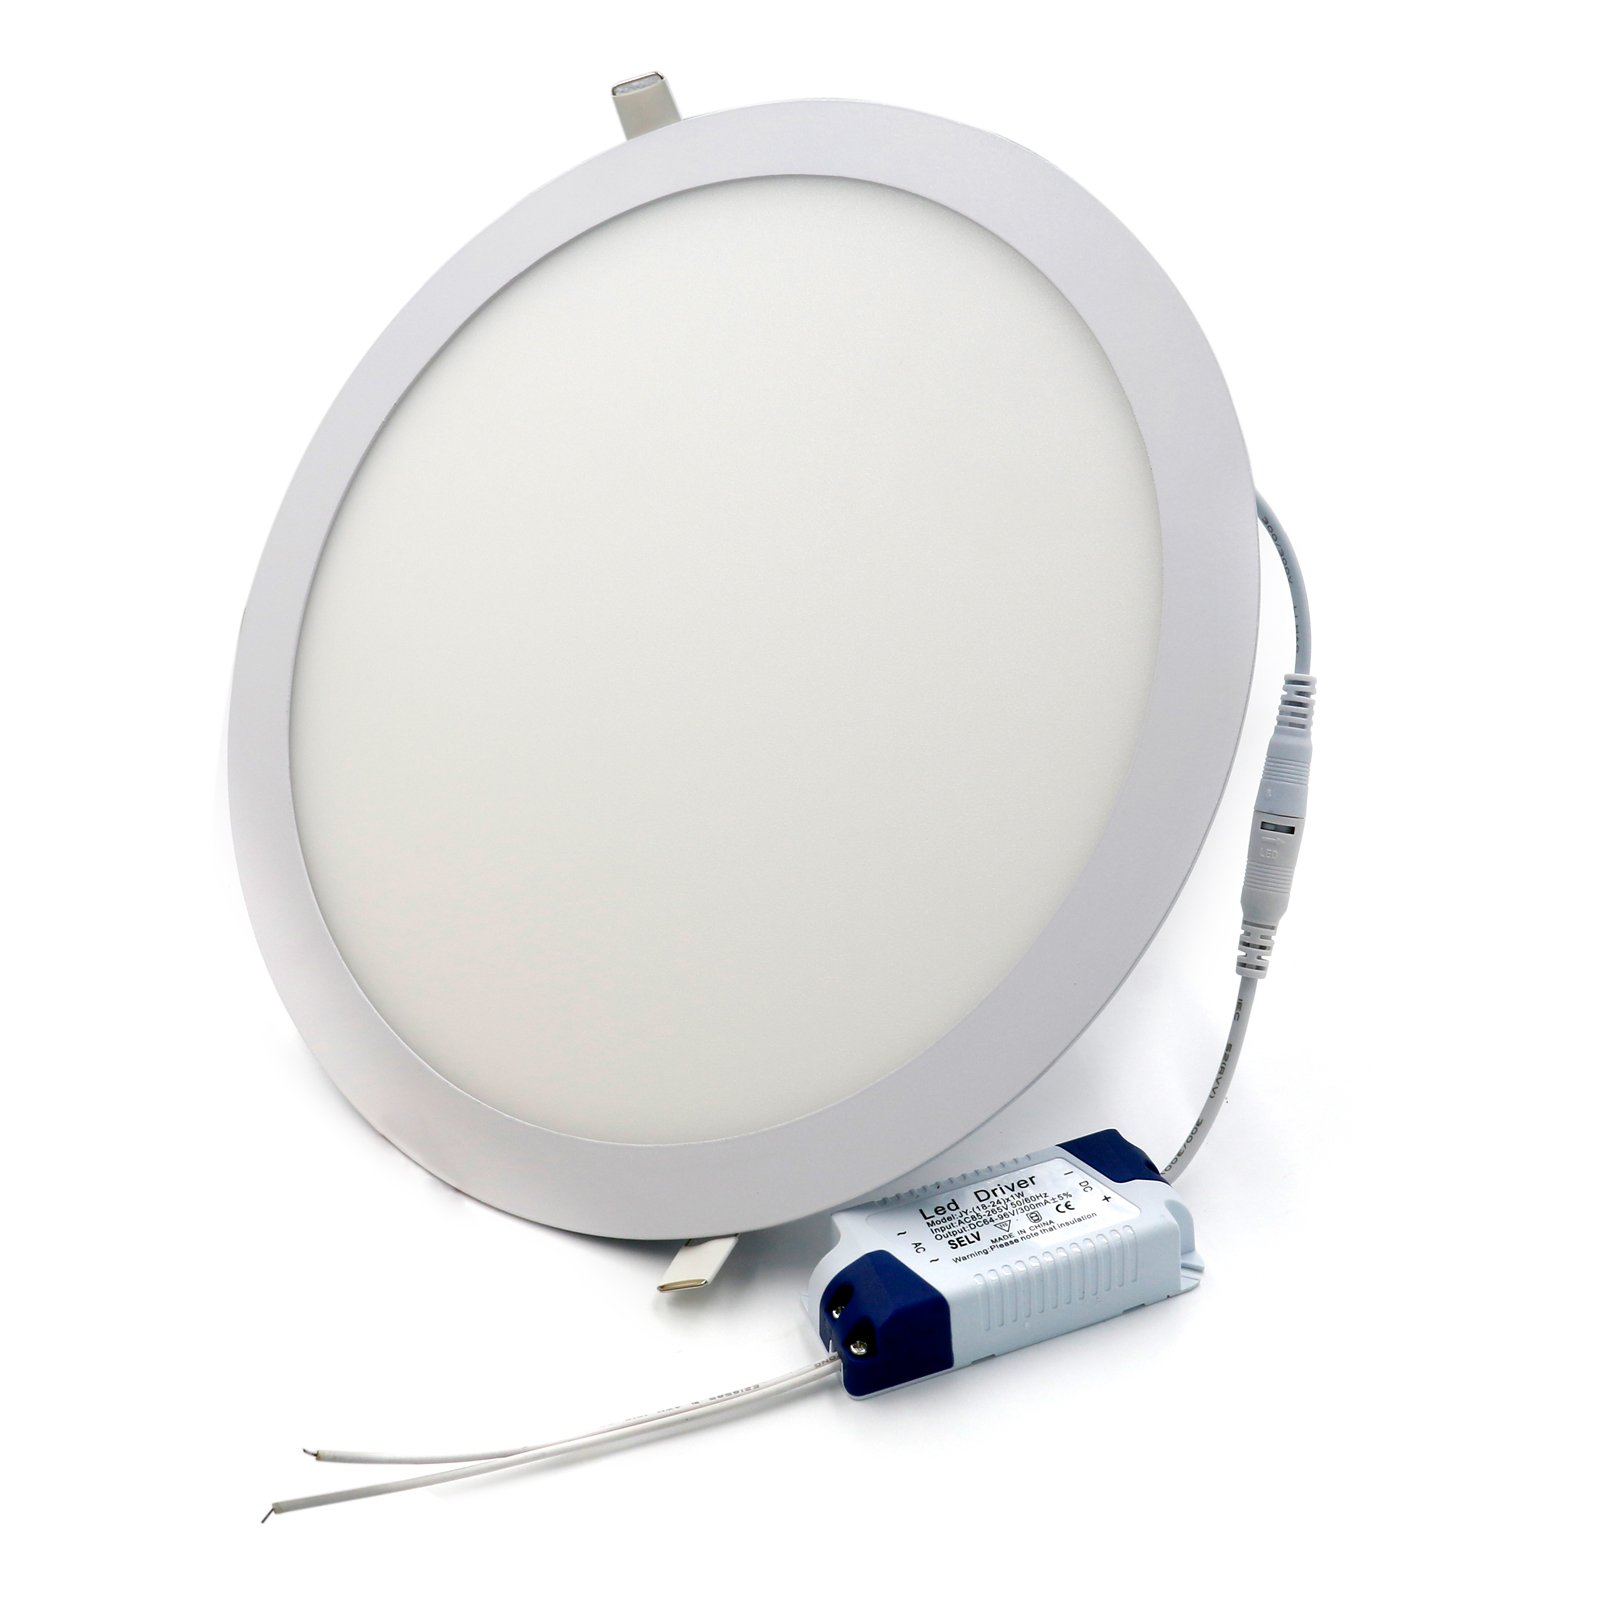 Jinda 95~265v Ac 24W LED Panel Light Cool White 6000K Scratch Proof Glare-Free Down Light Ultra Thin Round White Aluminum Frame Concealed Installation Ceiling Panel Lamp (24 Watts)